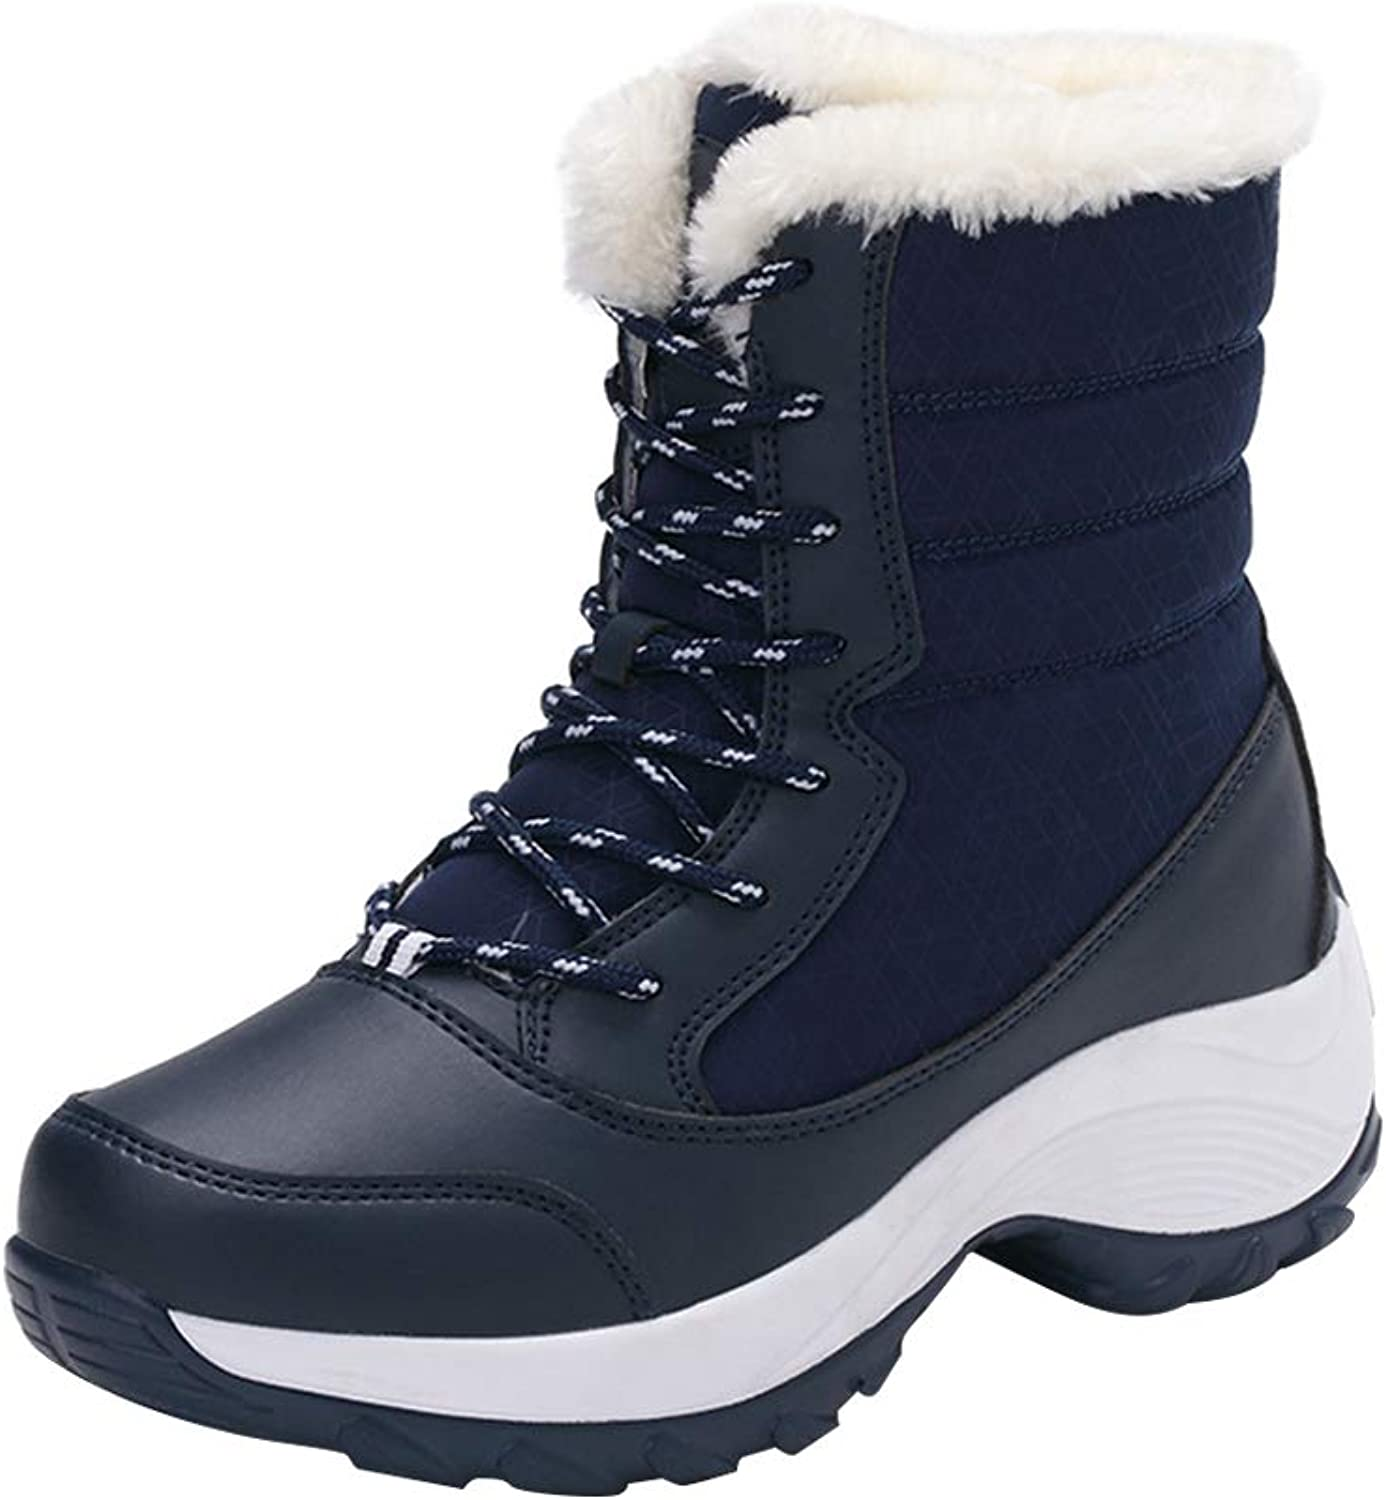 Uirend Snow Boots Women Platform Ankle - Ladies Waterproof Fur Lined Lace Up Boots Warm Plush Winter Breathable Slip Mid-Calf shoes